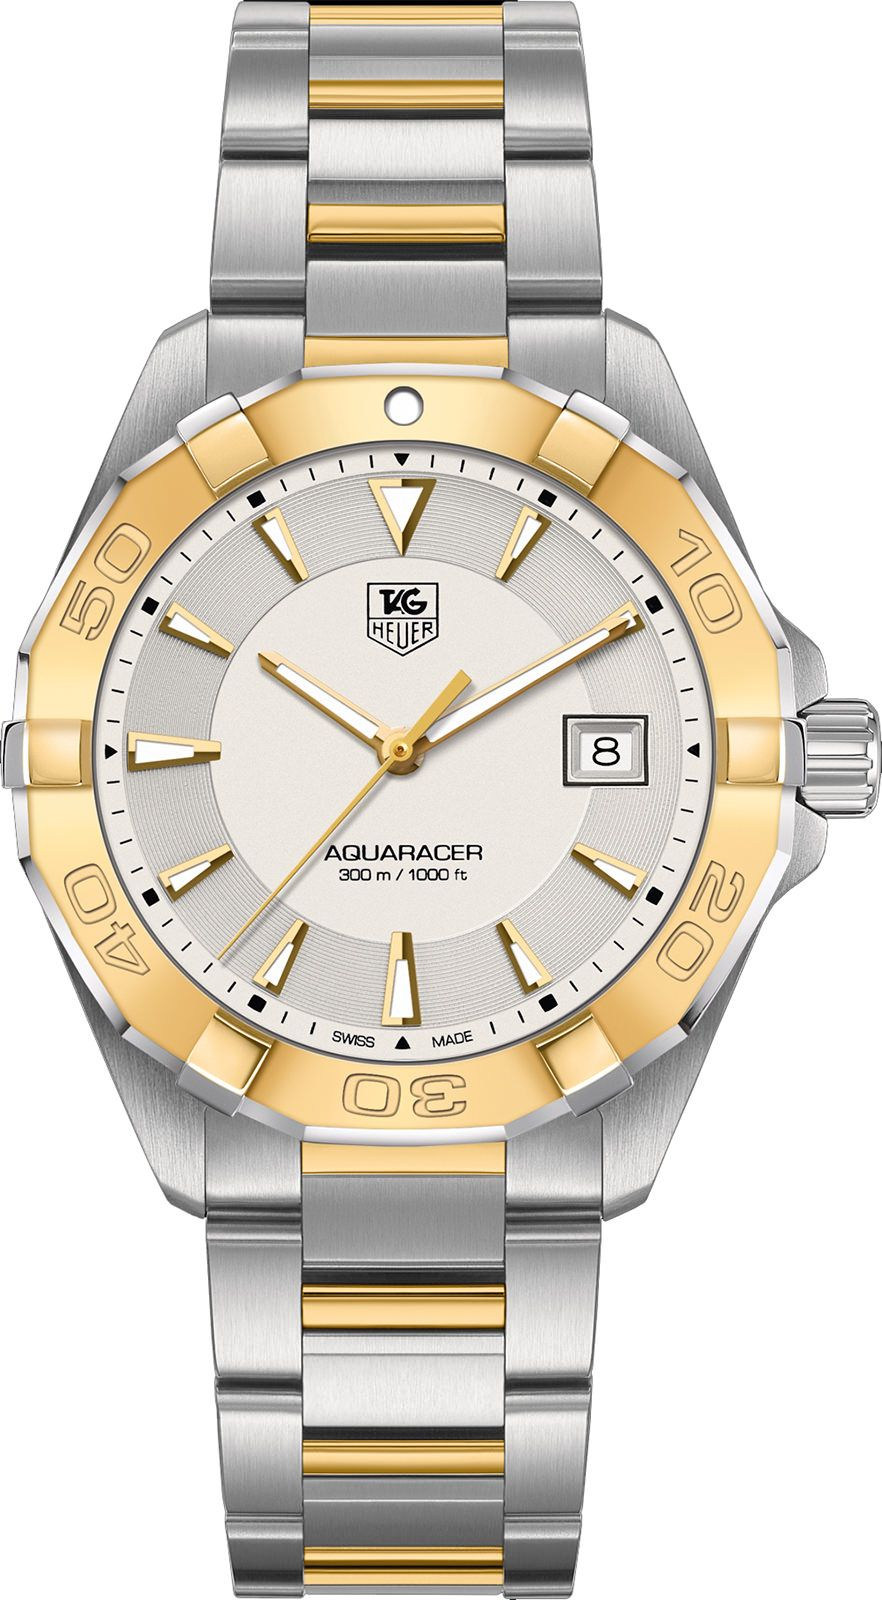 TAG HEUER AQUARACER CALIBRE 5 AUTOMATIC WATCH 300m - 40.5mm YELLOW GOLD - WAY2151.BD0912